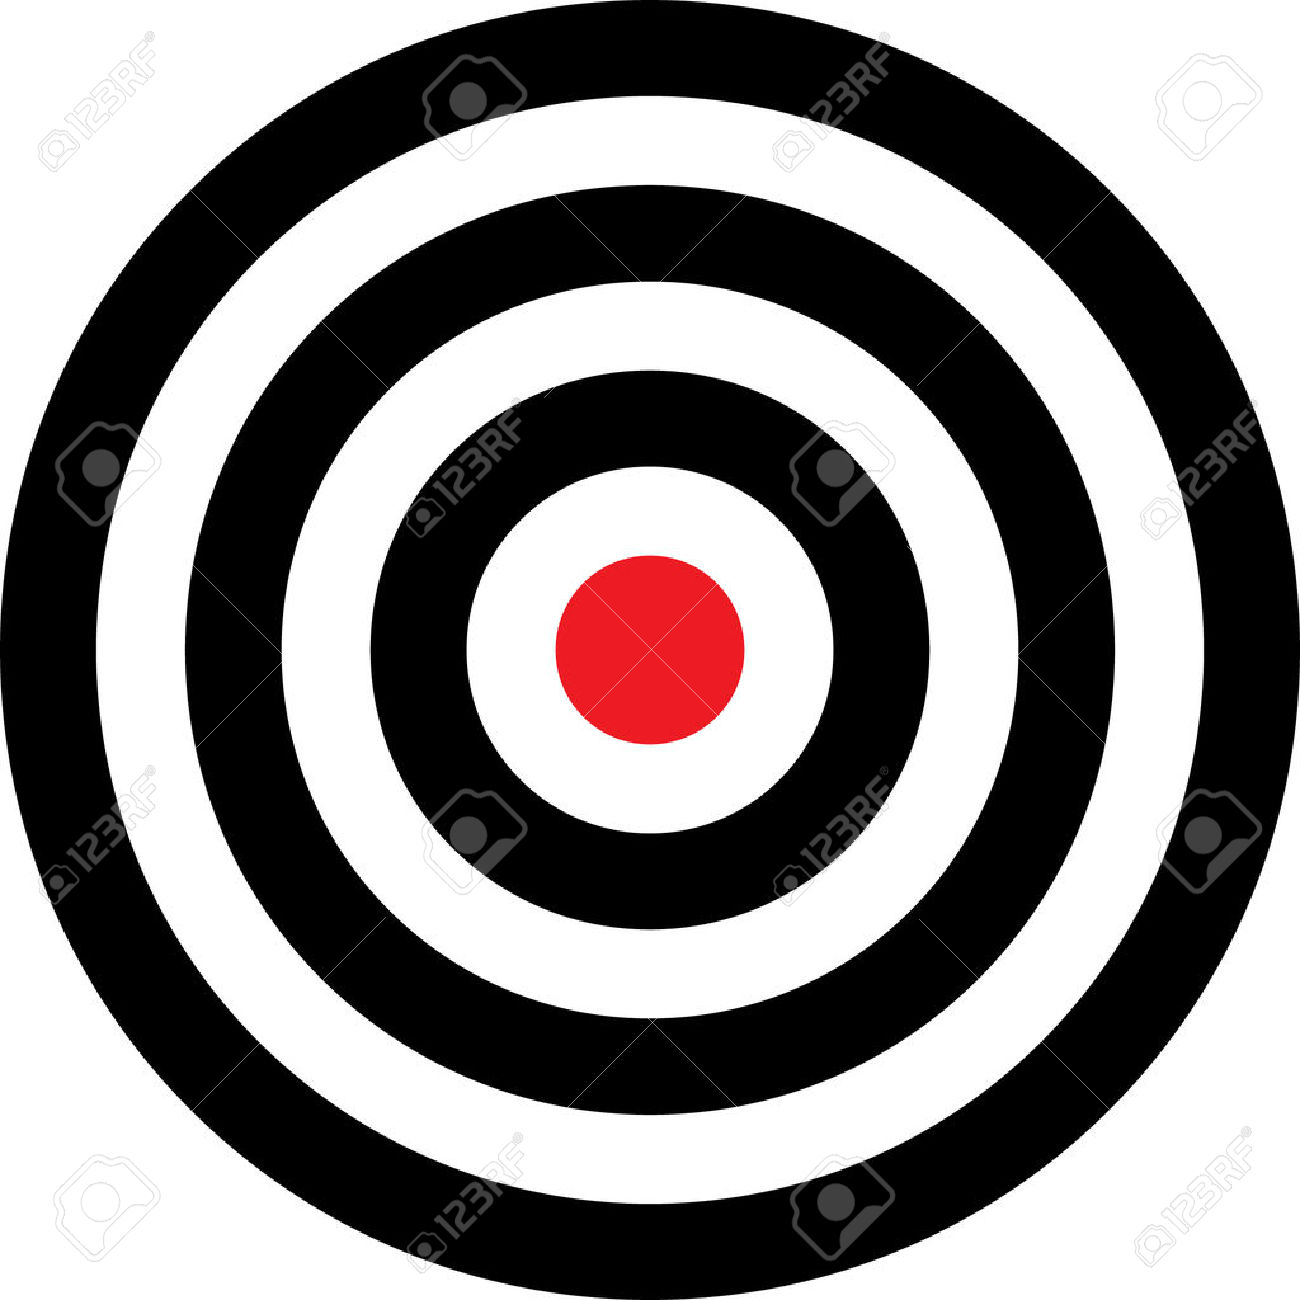 Target clipart no background jpg library stock Vector Transparent Target Illustration. Put This Target On Your ... jpg library stock